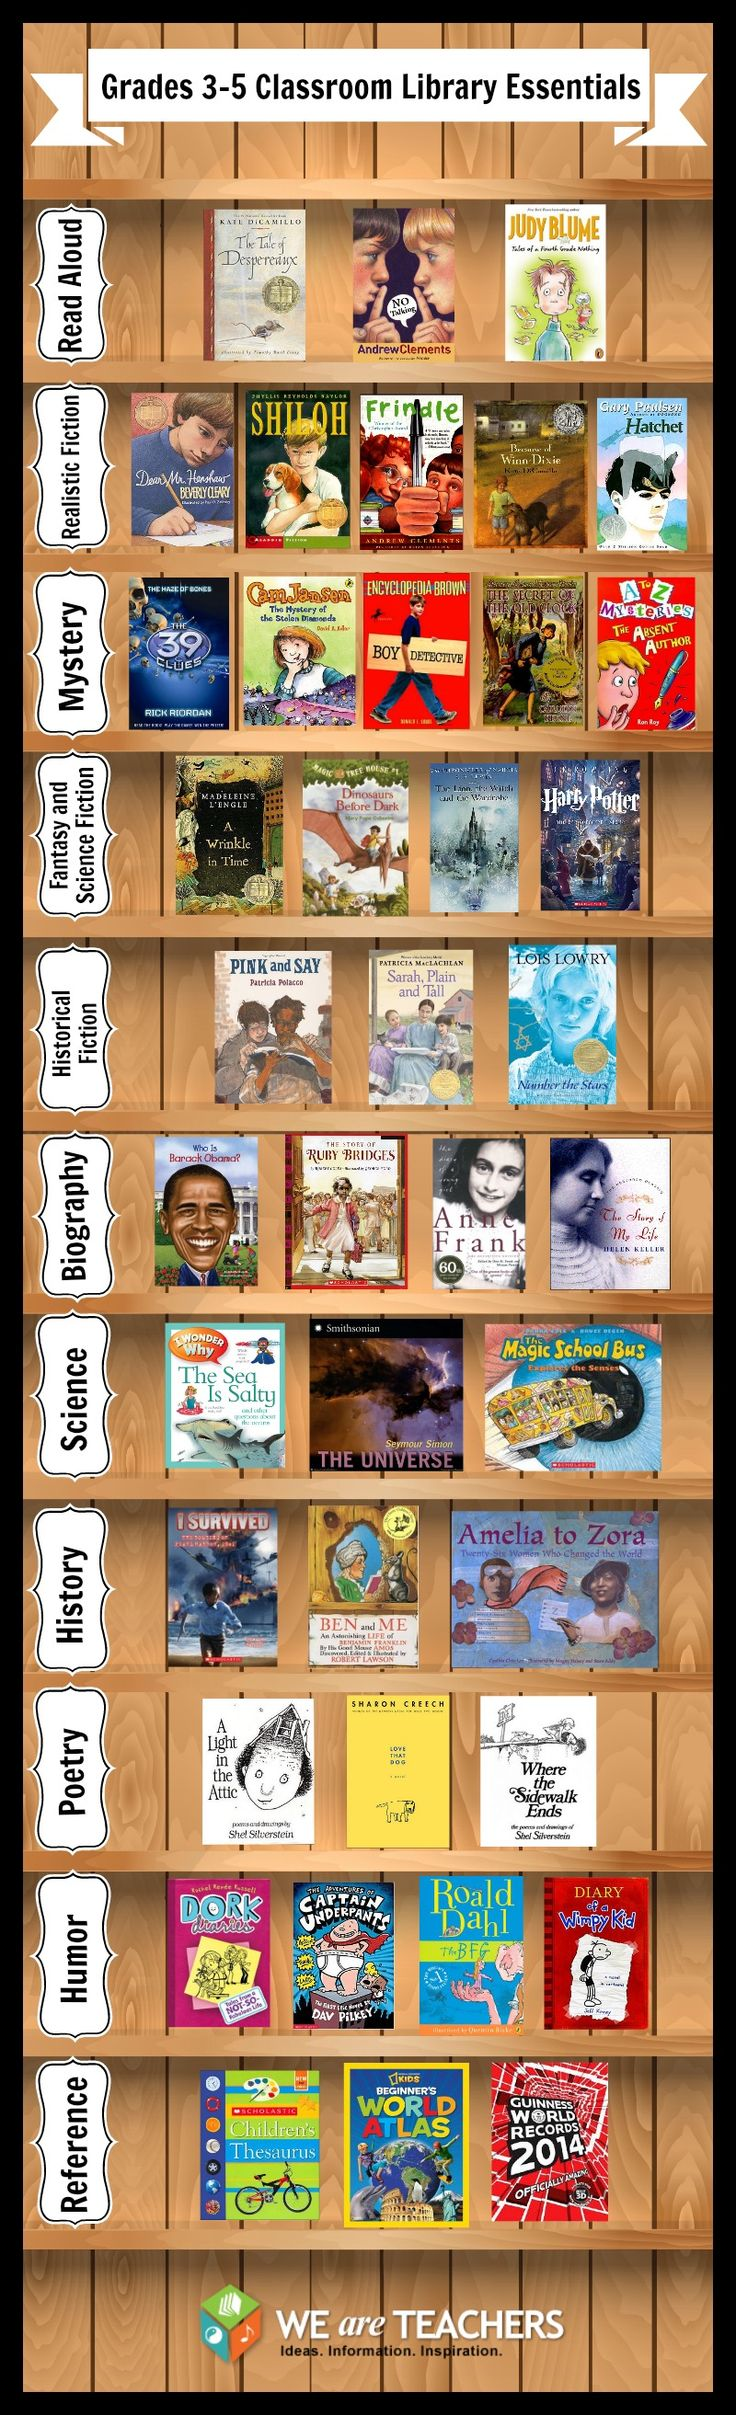 WeAreTeachers recently polled over 200 teachers about the best books in their classroom libraries, from their favorite read-alouds and fiction books to the top science, humor and poetry titles.  @Nicole Novembrino Novembrino Osborne